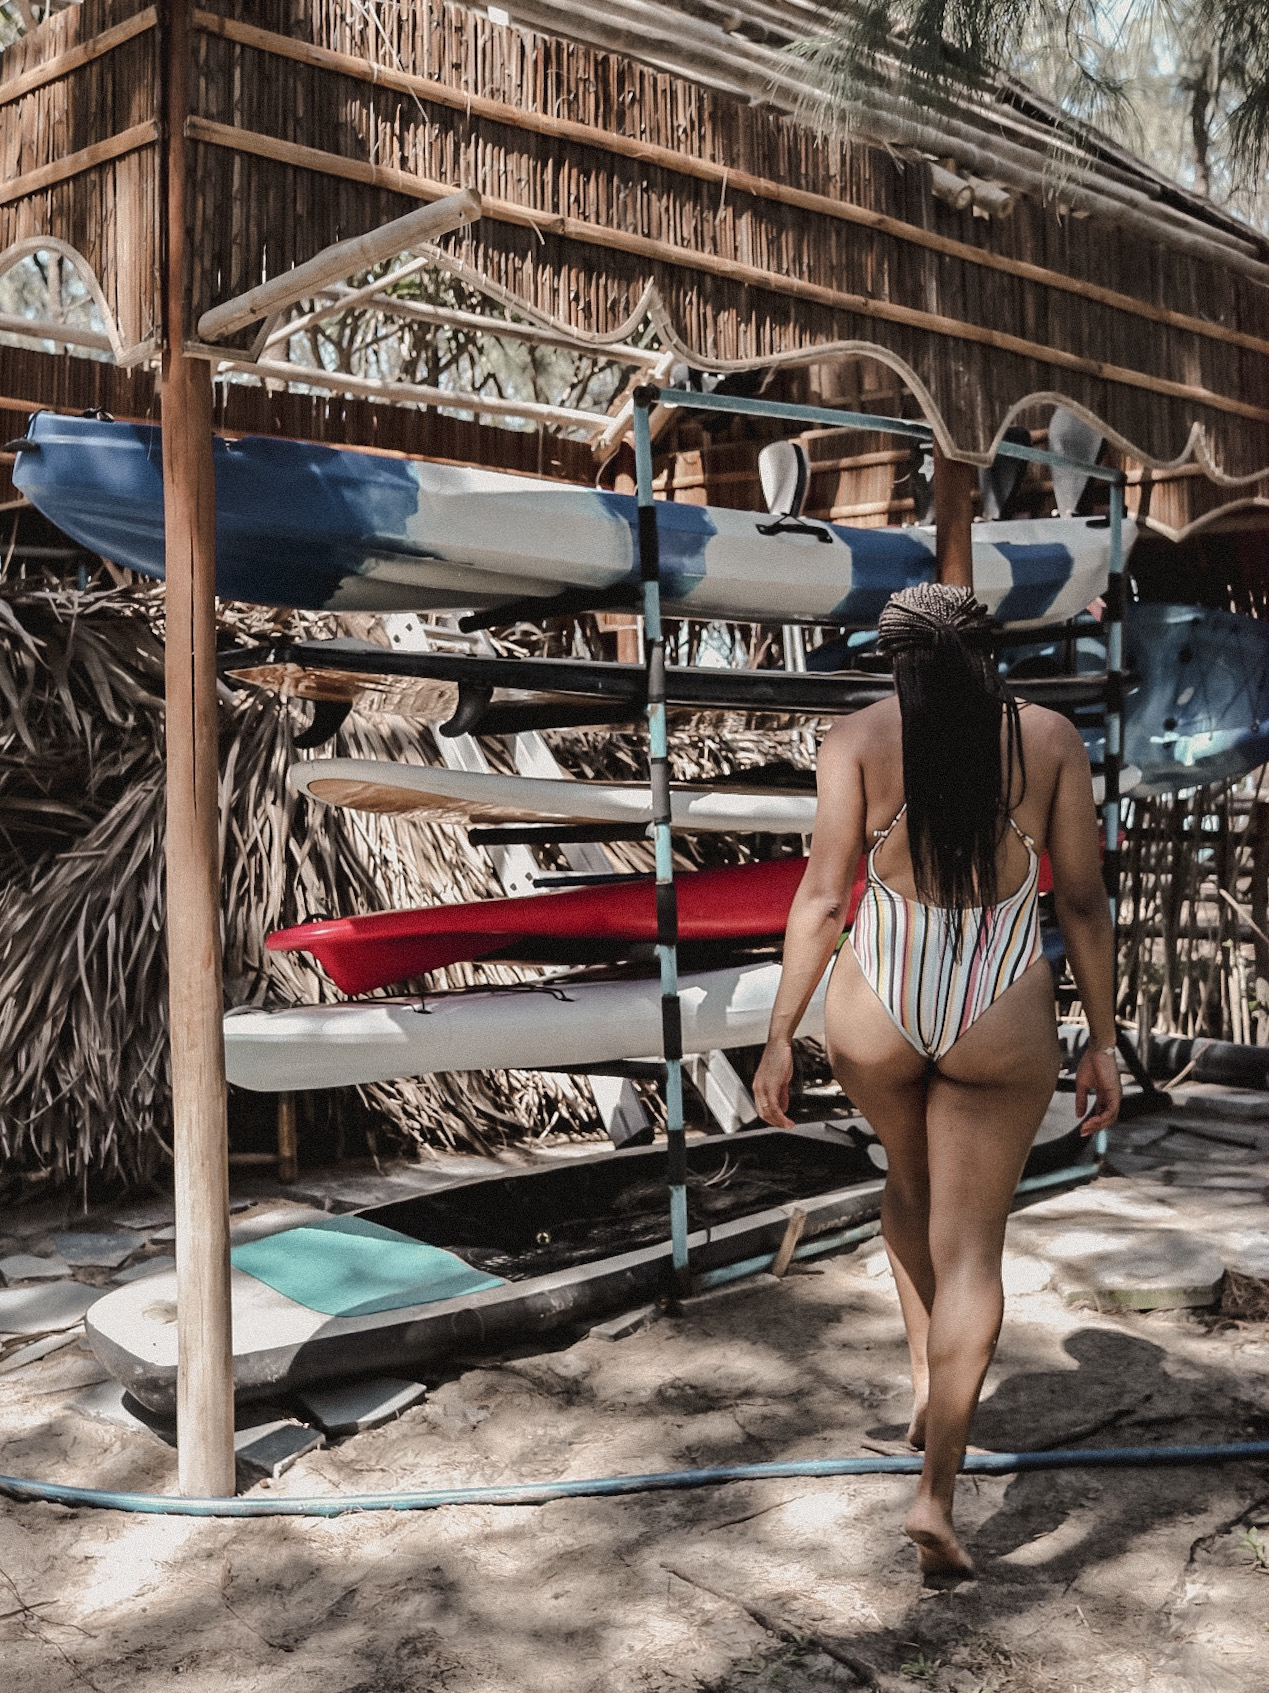 One-piece swimsuit feature photo next to surfing rentals at Kahuna's Beach Club Bar & Grill at An Bang Beach, Hoi An, Vietnam